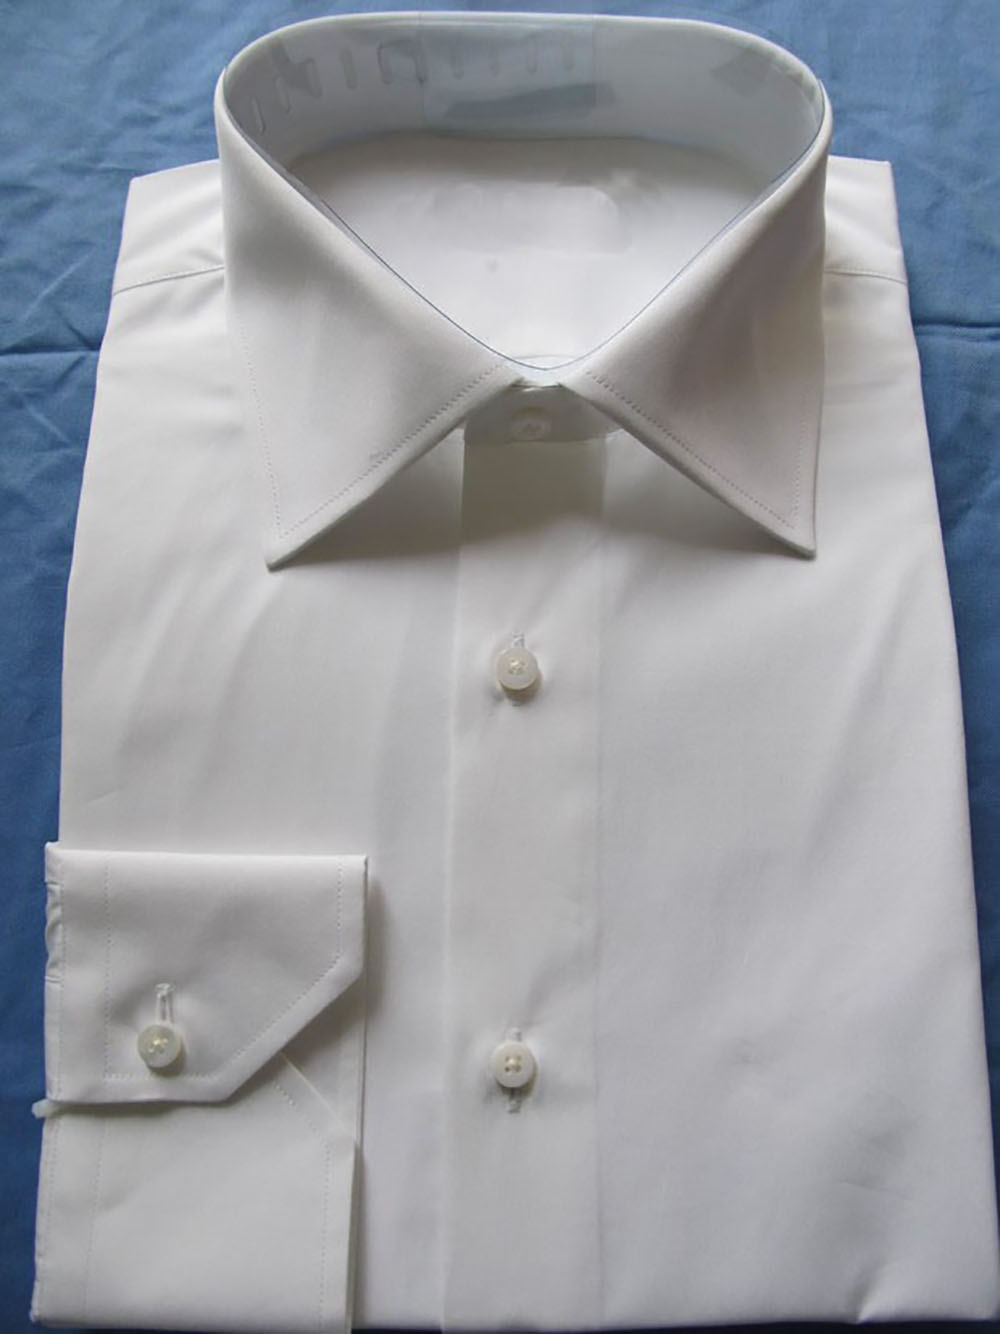 White Dress Shirts For Men CUSTOM MADE Long Sleeve White Shirt Men,100% Cotton Shirt With 12 Patterns,Slim Fit Mens Dress Shirt